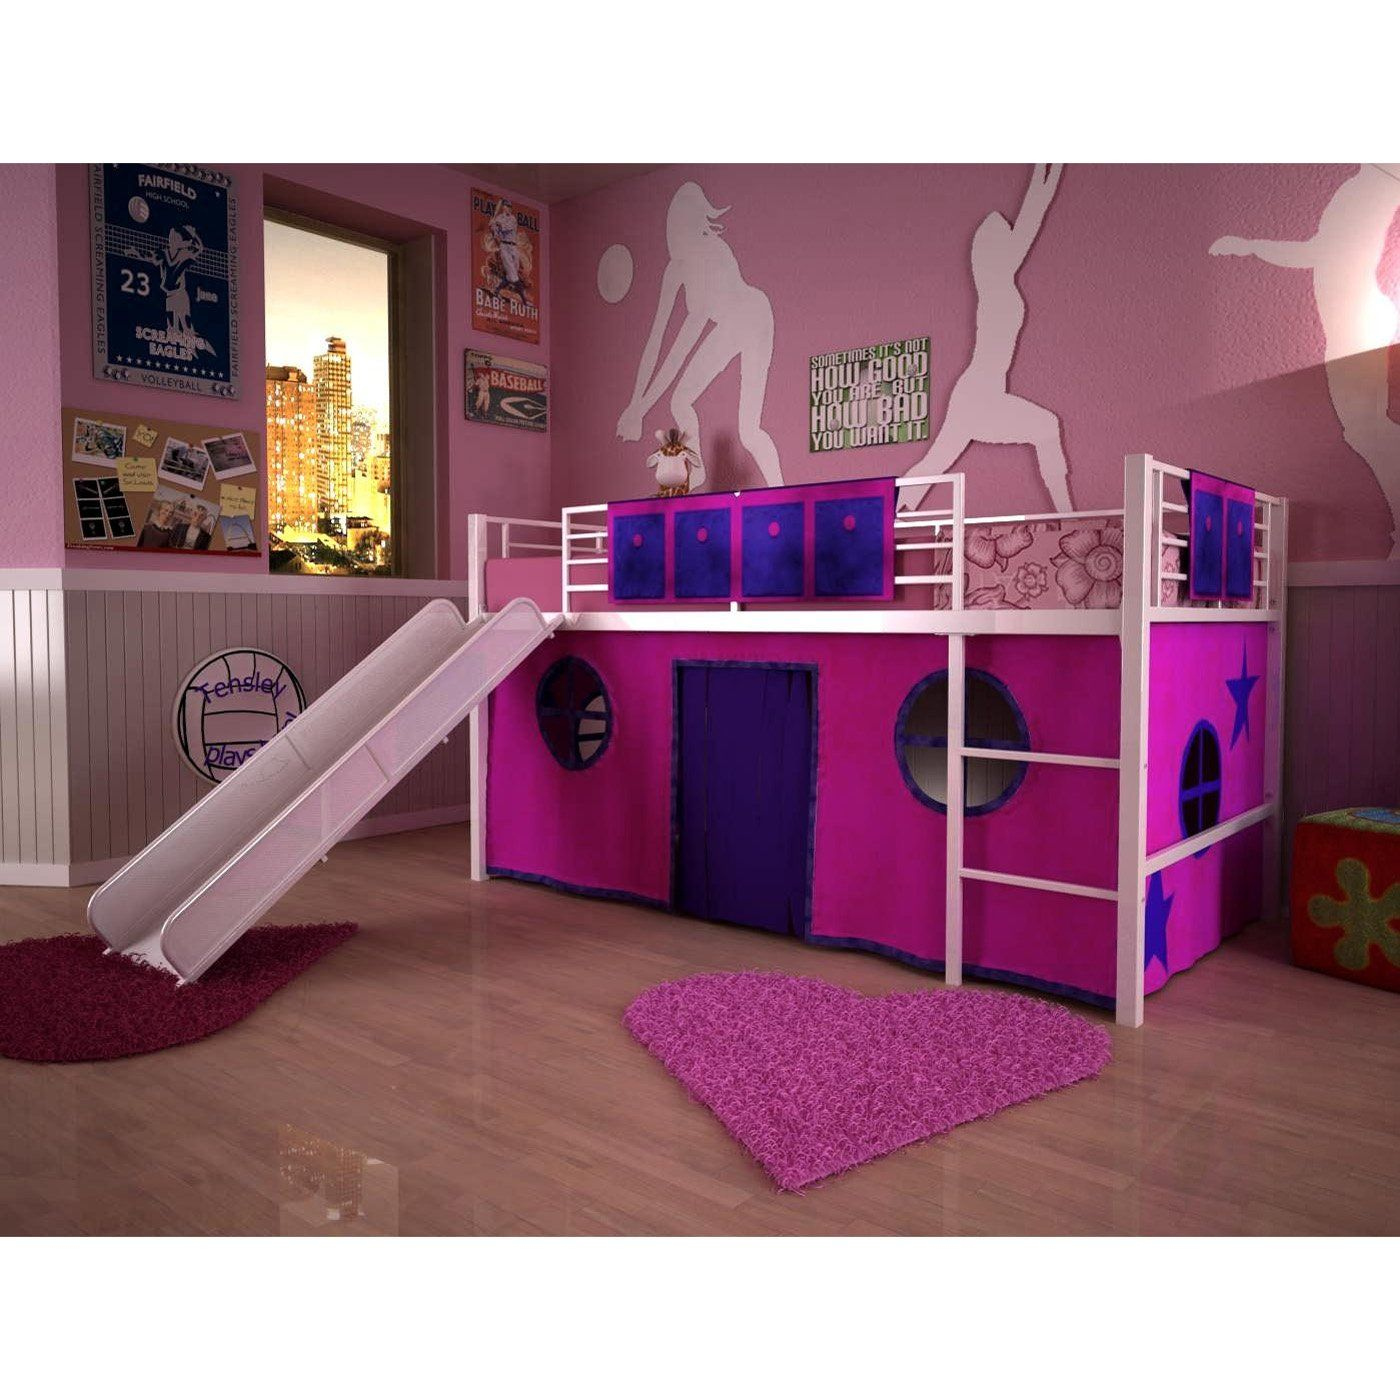 Bunk beds for girls with slide and desk - Pink Loft Beds For Teenagers Loft Beds For Teen Loft Bedsbunk